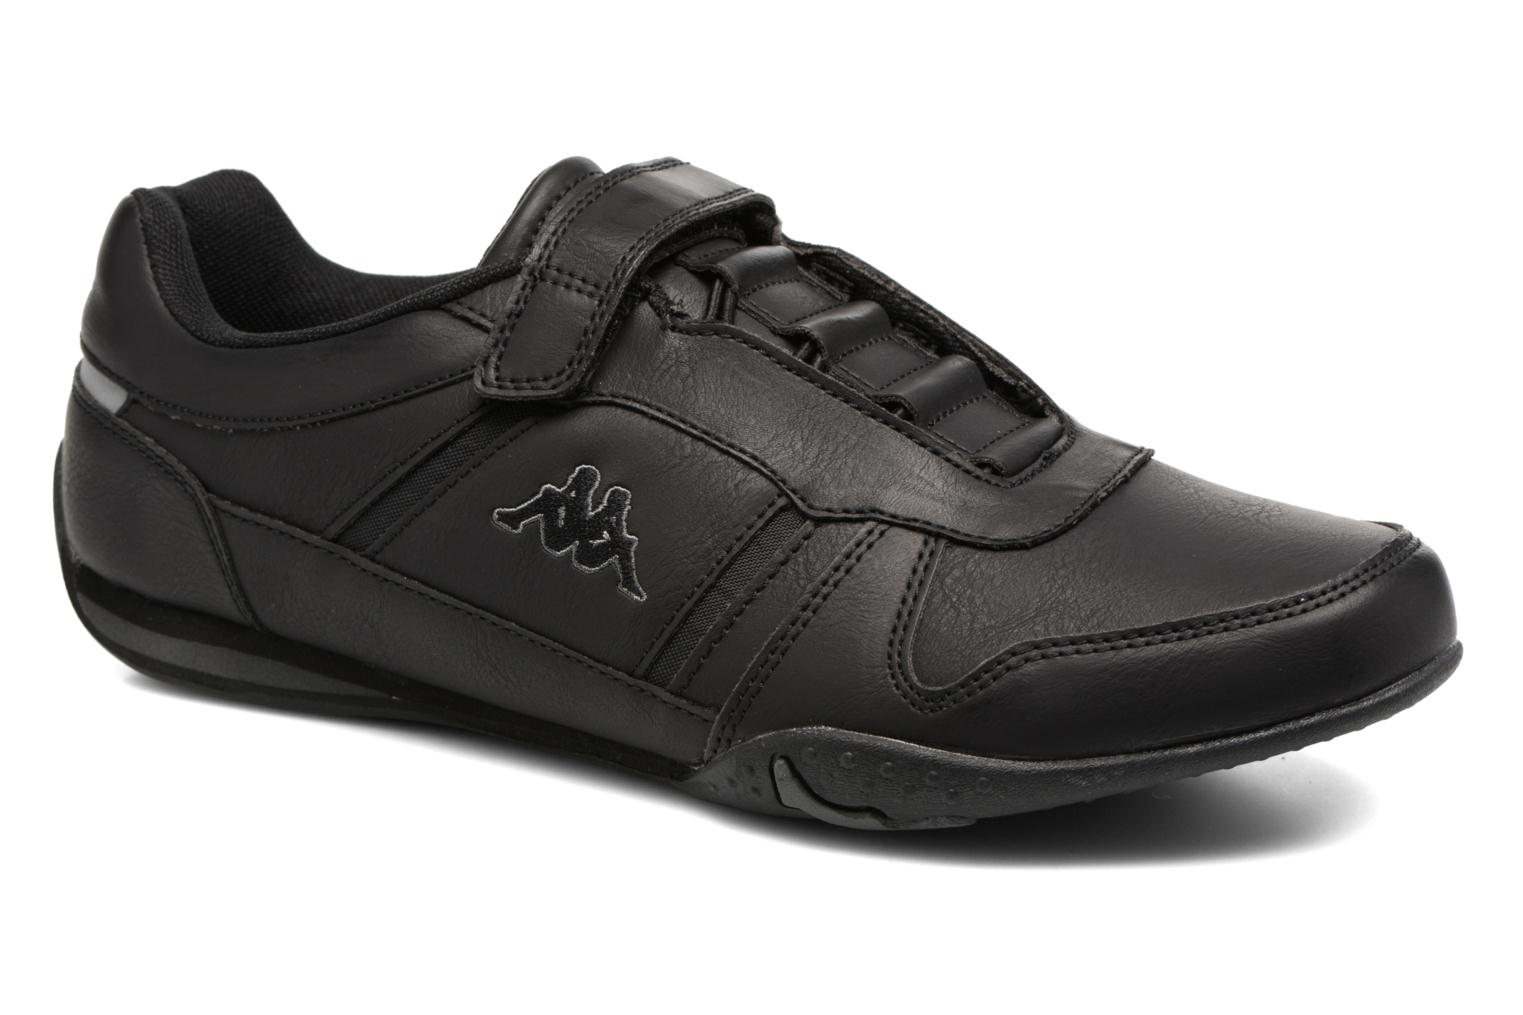 Parhelie Ev Black/dark grey